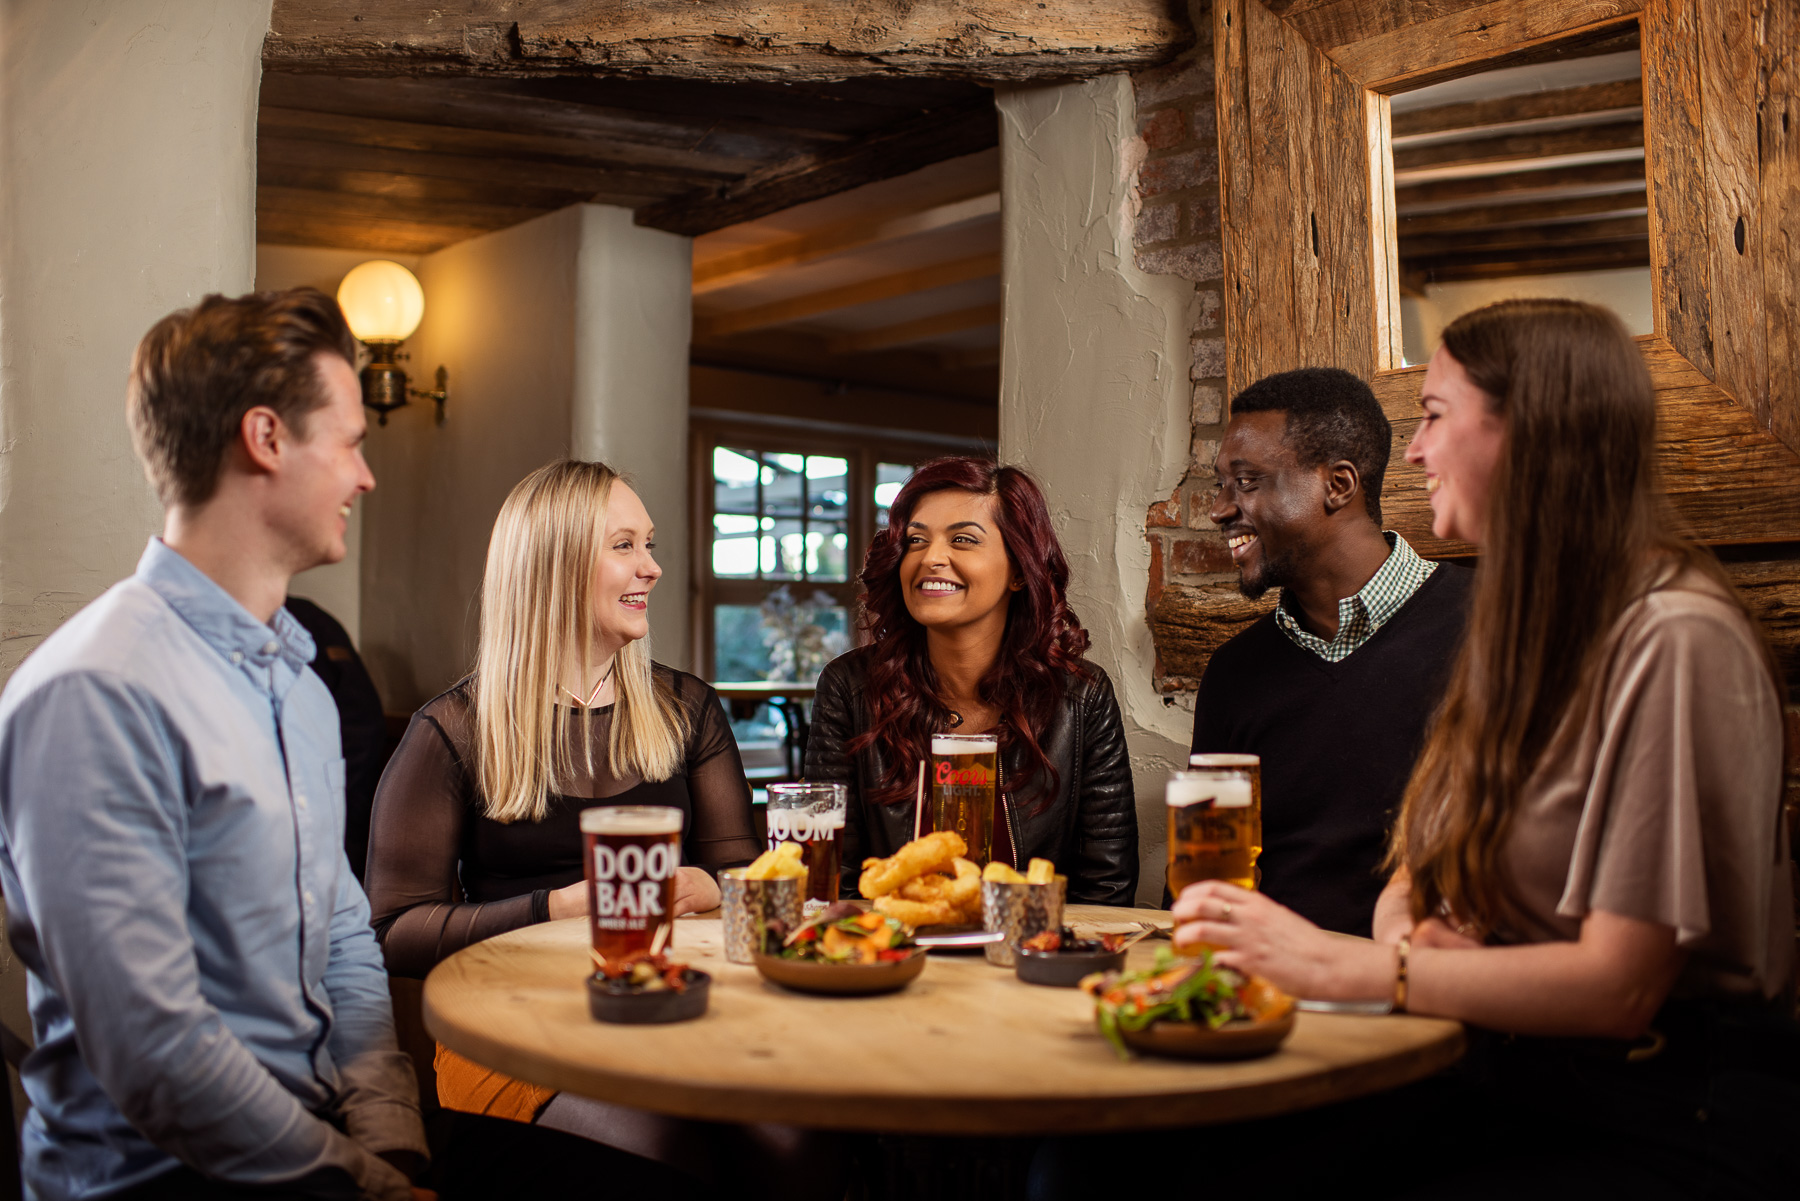 Group of young men and women meet in the pub for a social drink and food